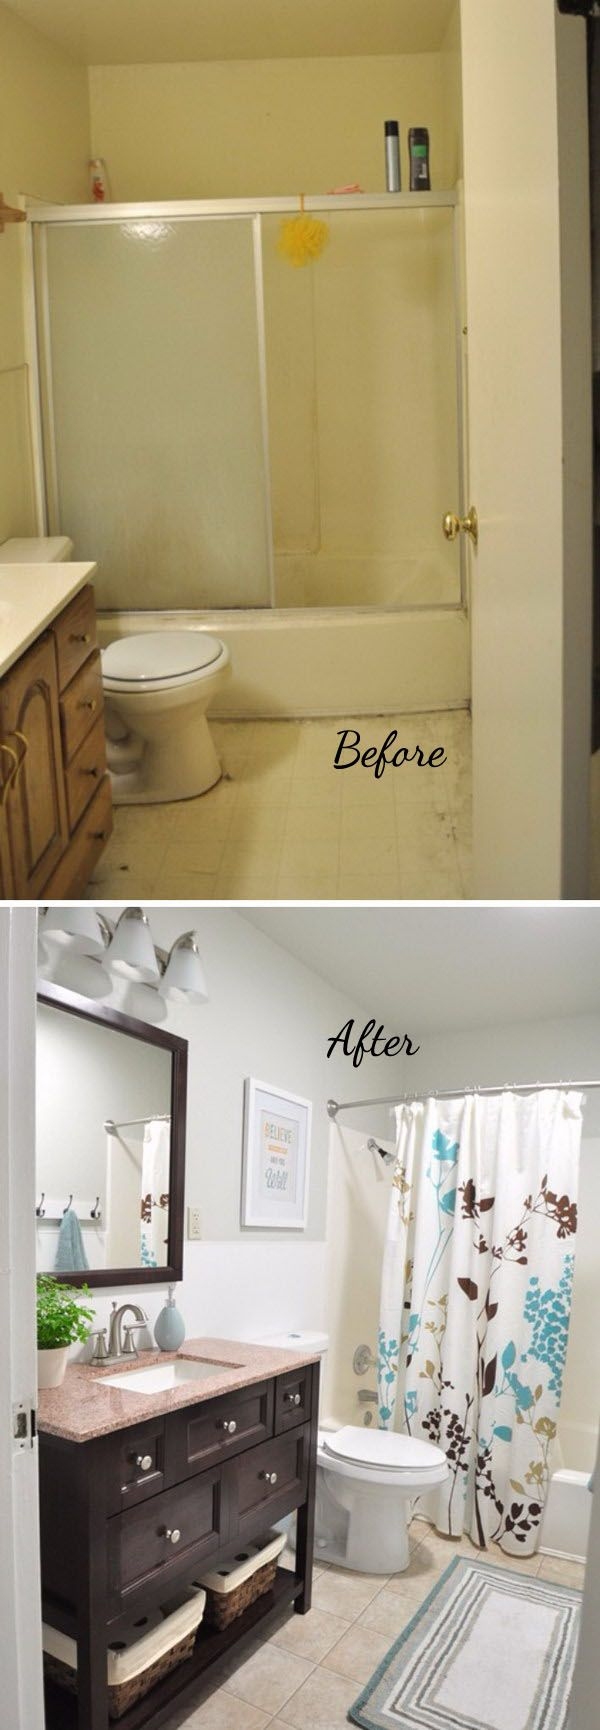 Remodeling Bathroom Ideas Older Homes before and after: 20+ awesome bathroom makeovers | hall bathroom